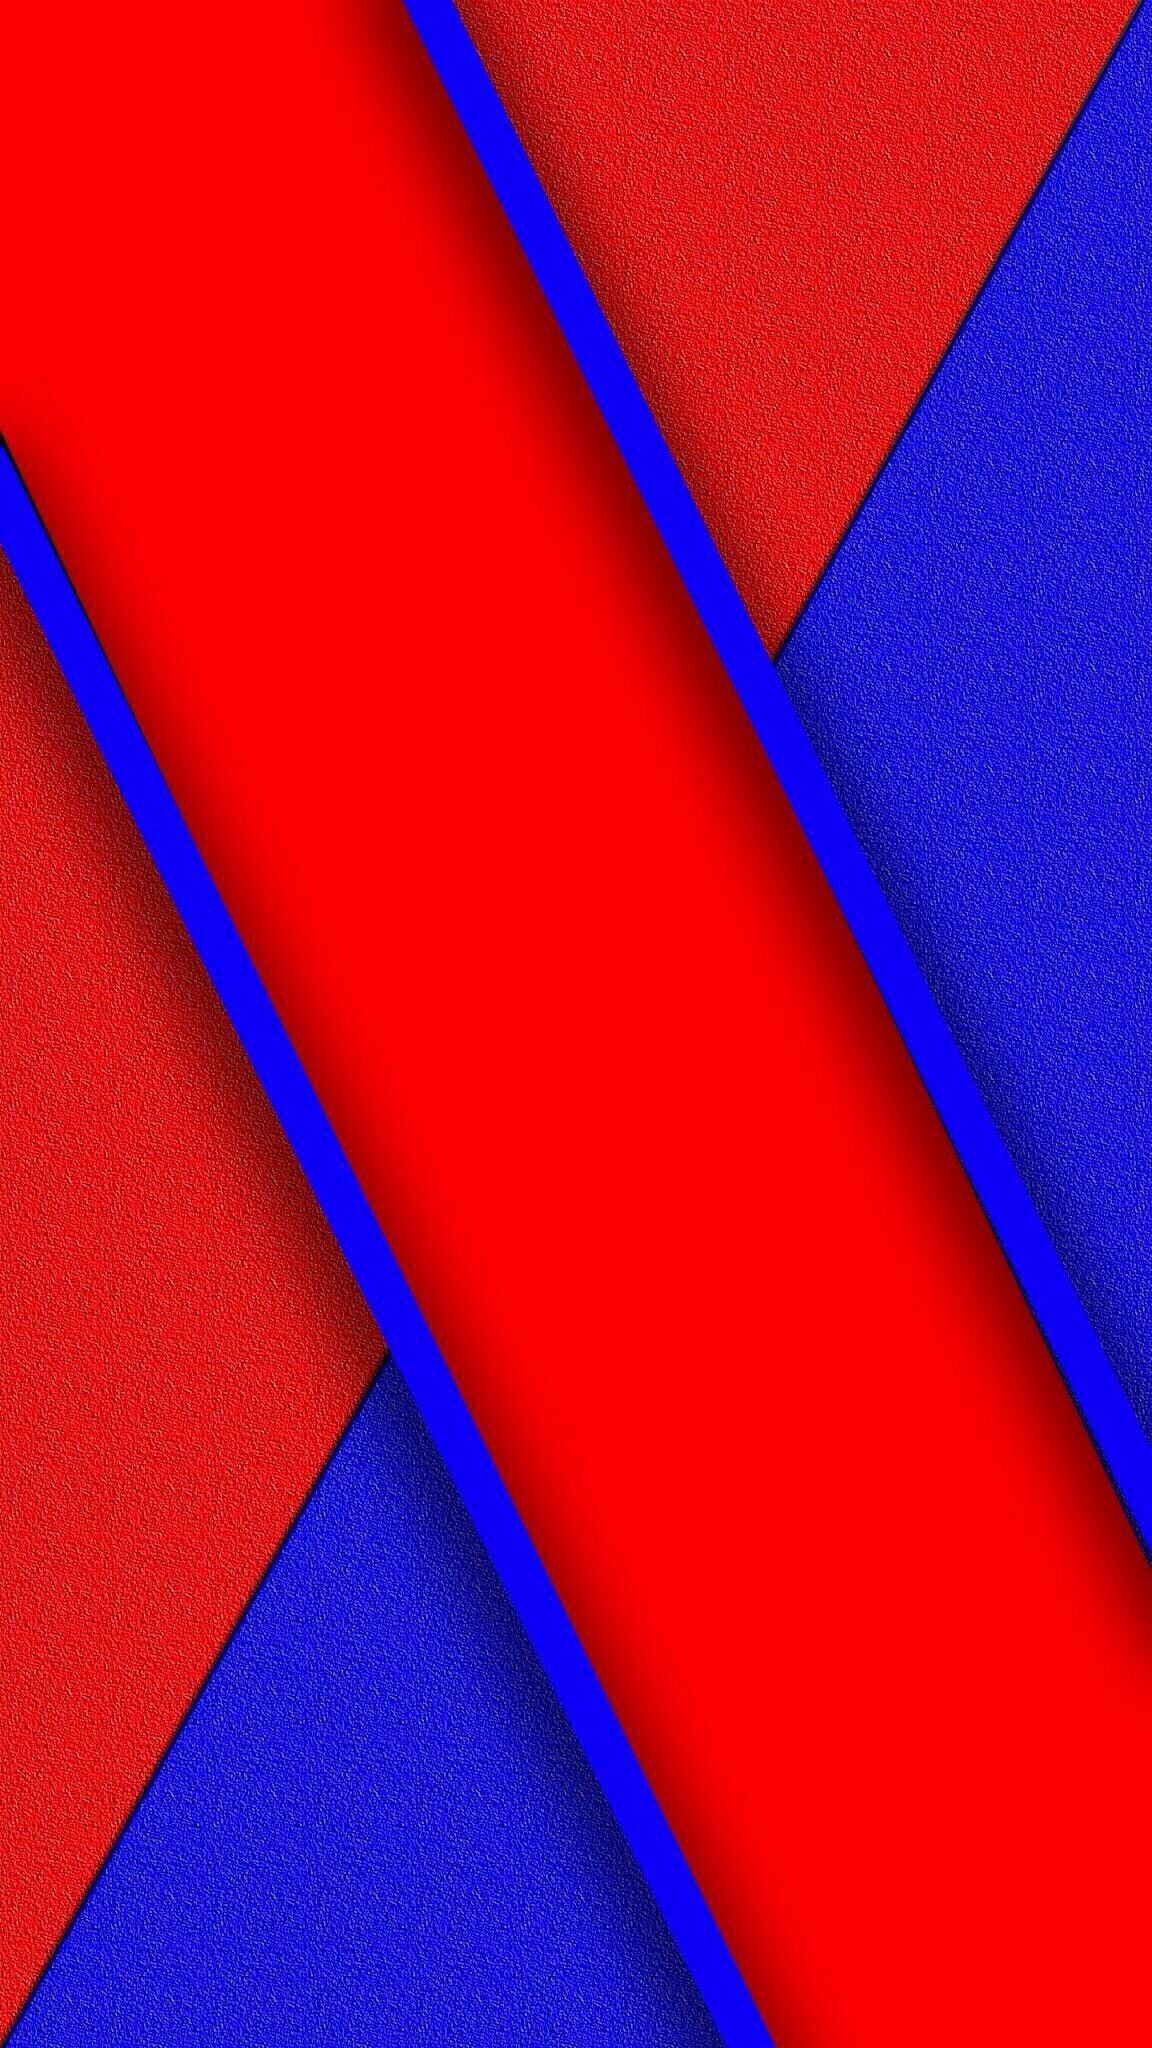 Blue and Red Abstract Wallpaper | Abstract wallpaper ...